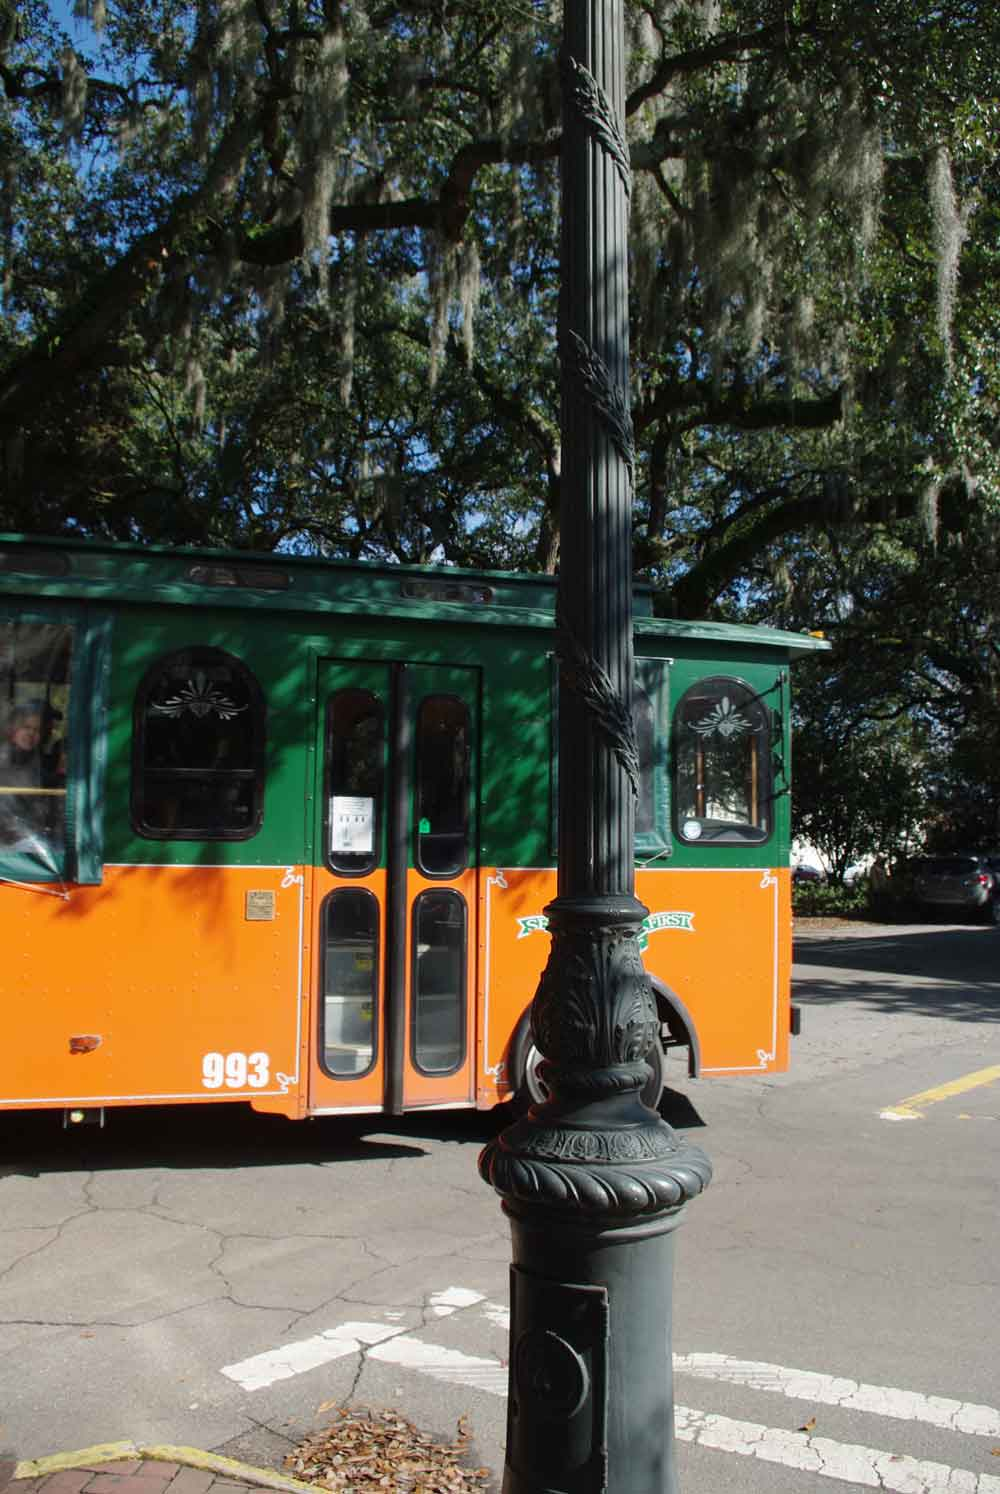 Free trolley tours around the city were available to convention guests